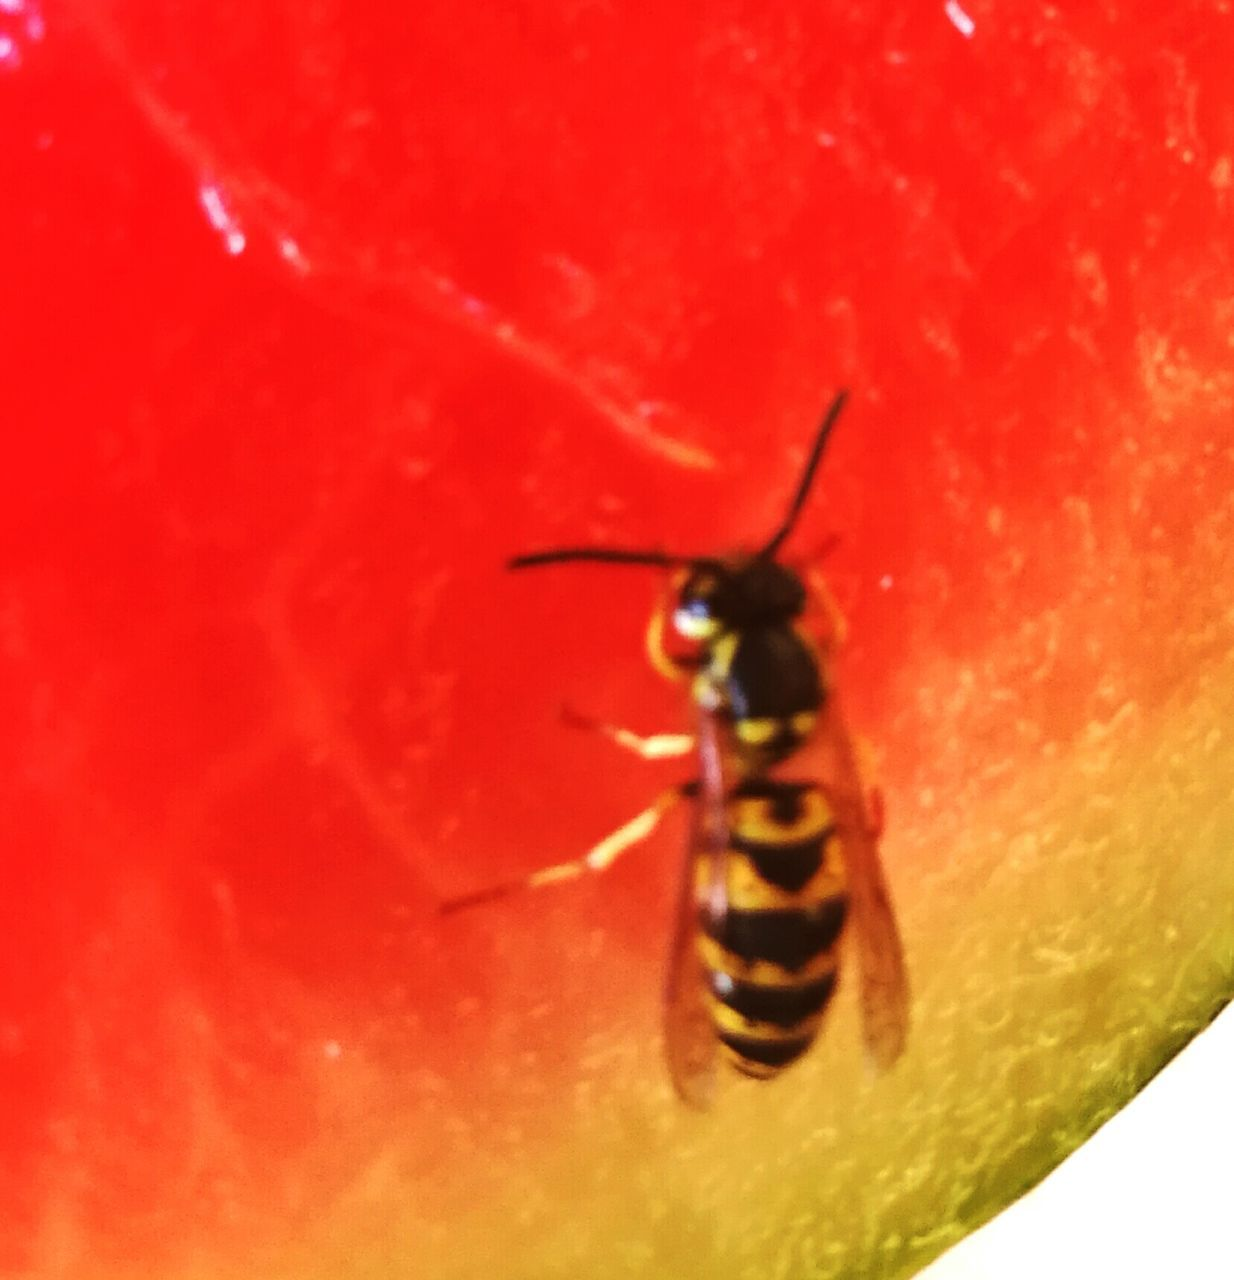 one animal, insect, animals in the wild, animal themes, red, close-up, animal wildlife, no people, outdoors, nature, day